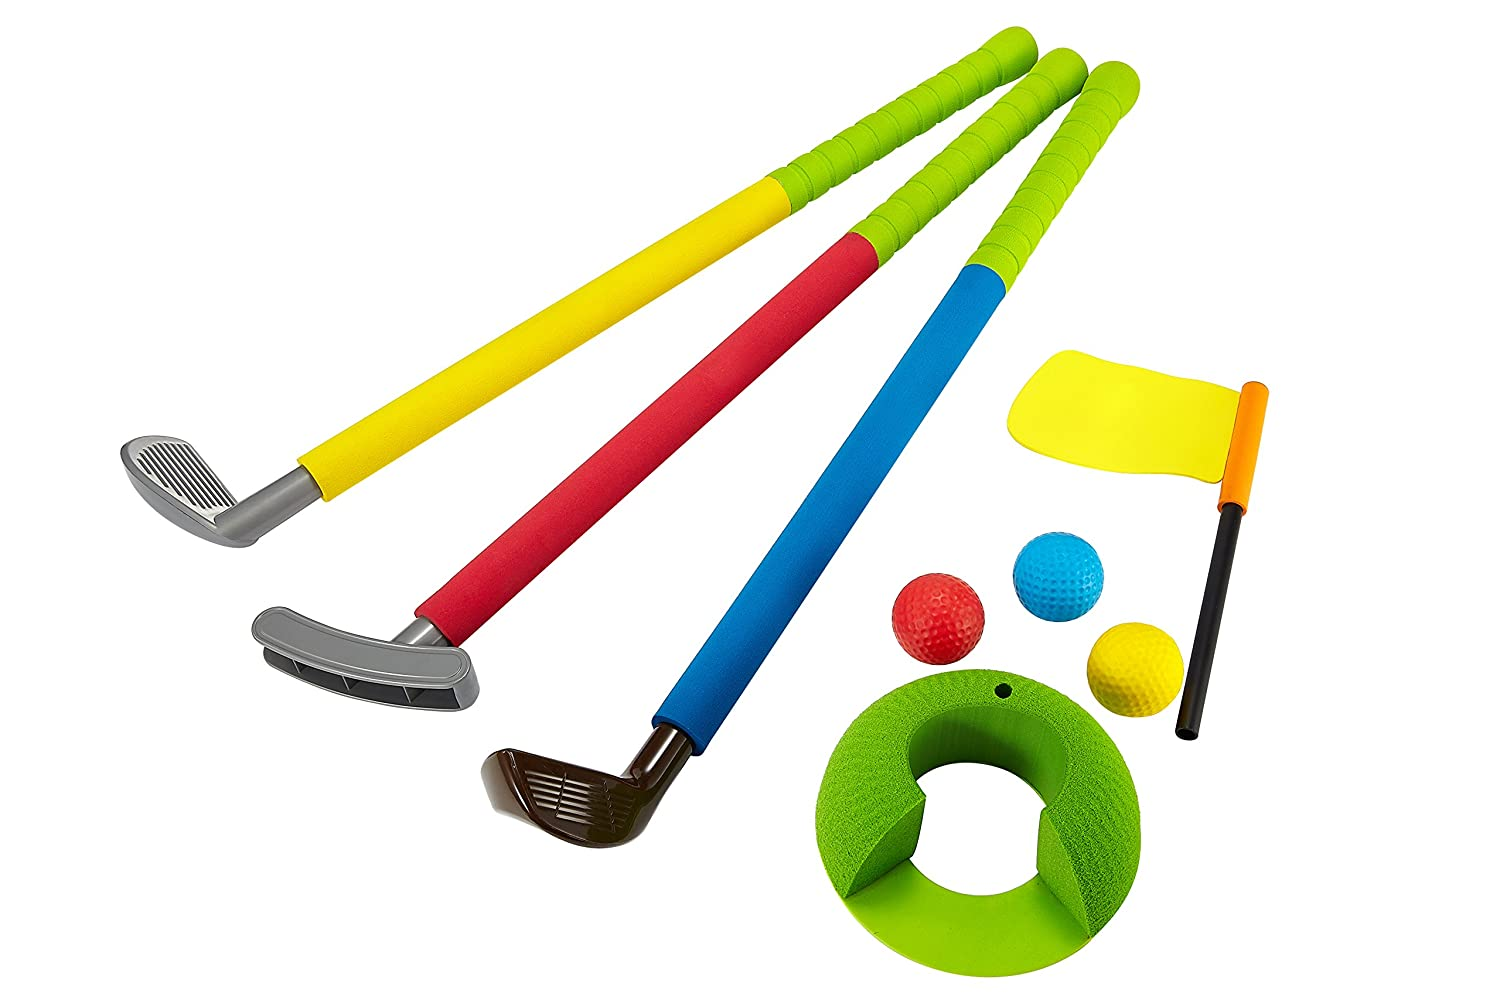 Uarzt Soft Foam Glof Sets Toys for Kids Childrens Toddler Indoor/Outdoor,Easy hit Golf Clubs Set/3 Balls,4 Types of Clubs,1 Hole and Golf Flag (Glof ...